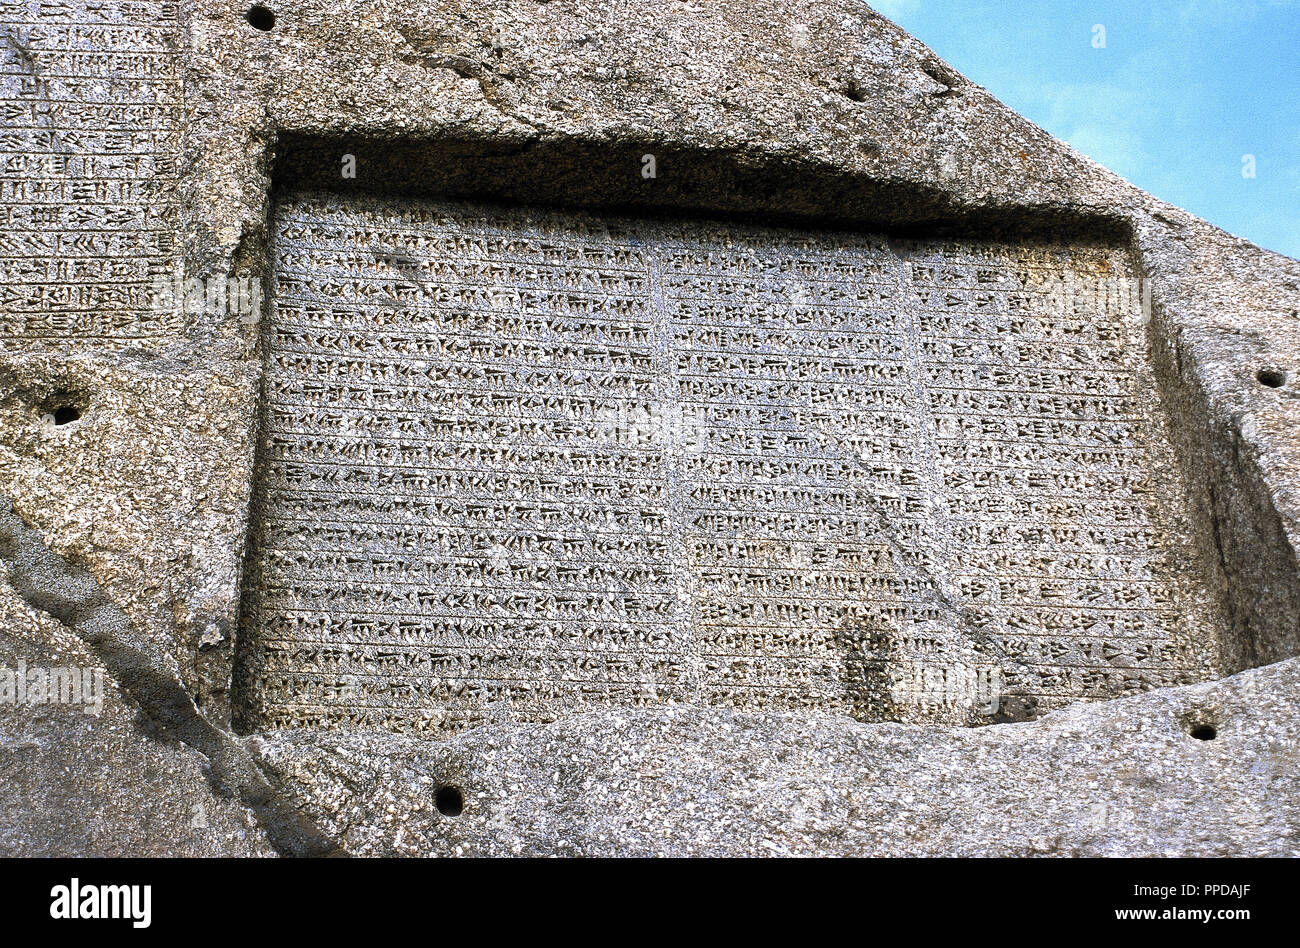 Achaemenid Empire  Ganjnameh  Ancient inscription carved in